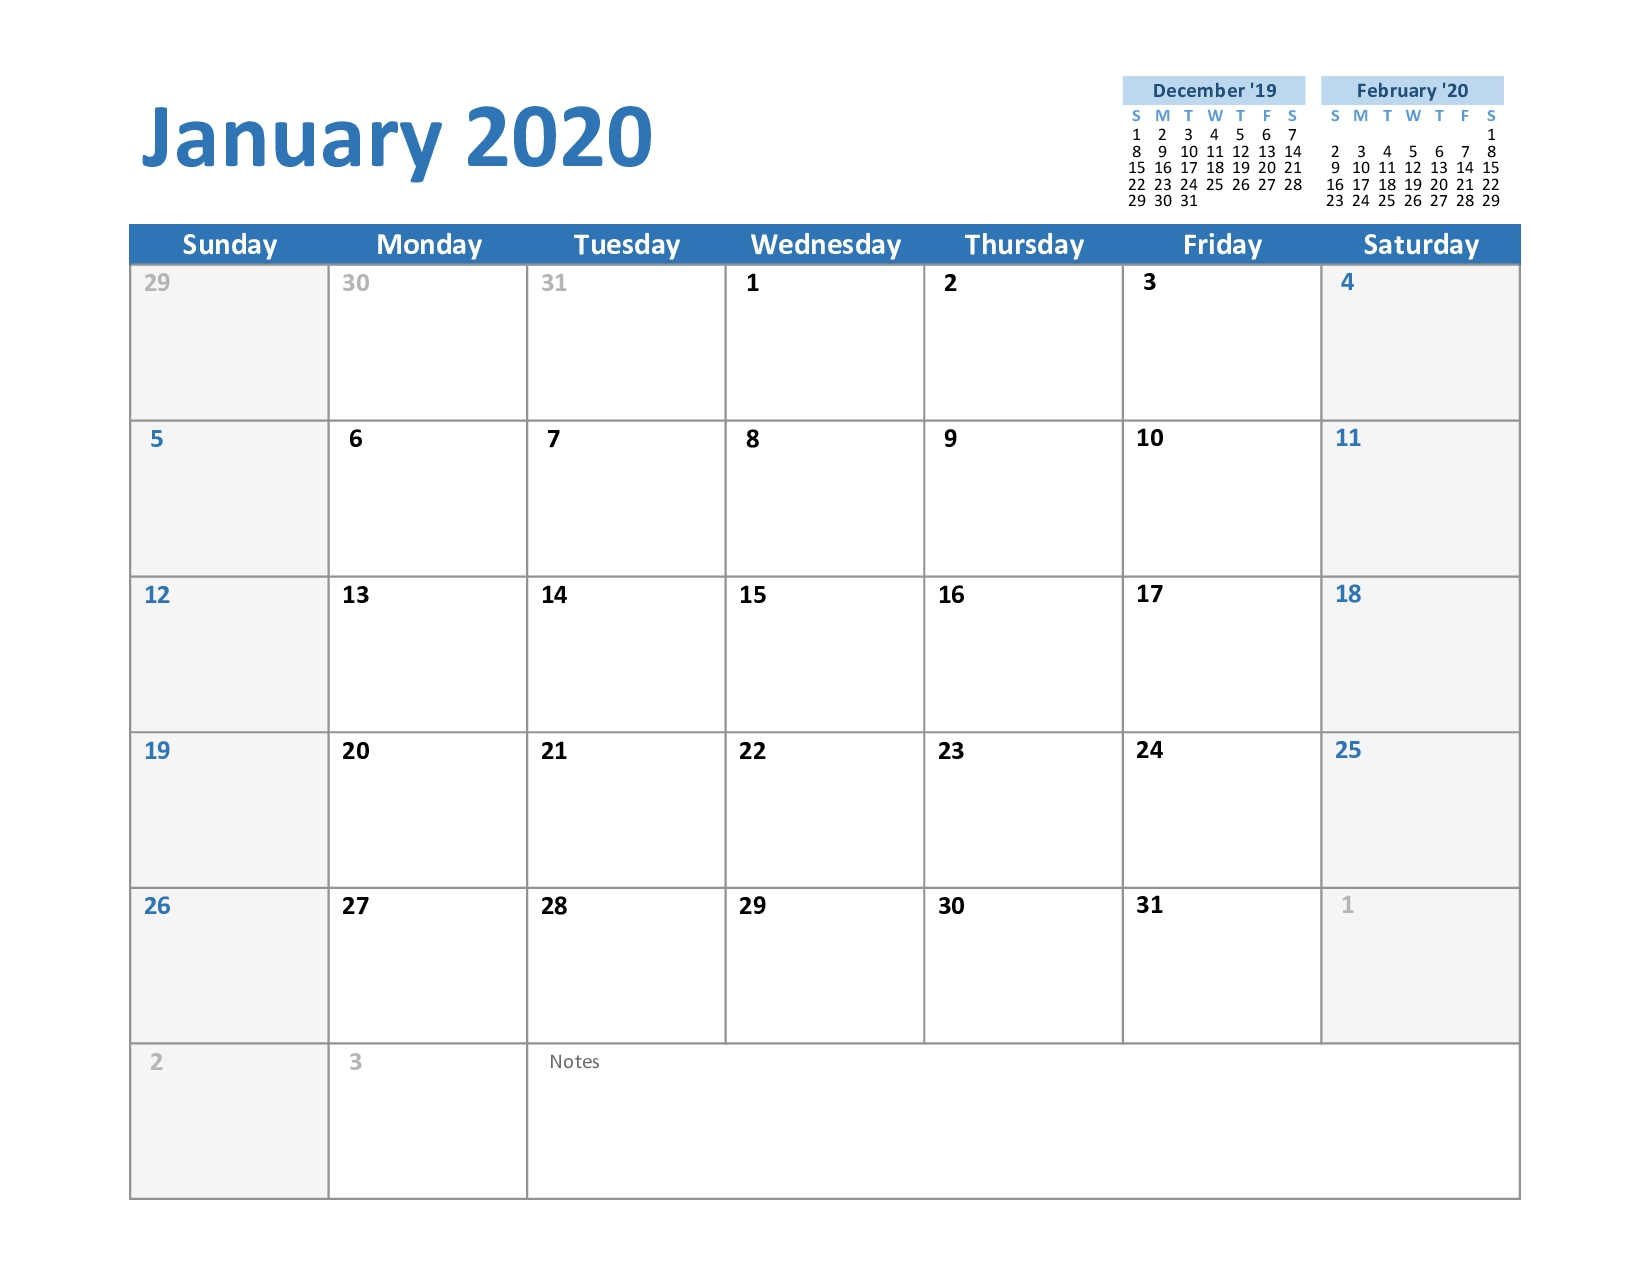 Free January 2020 Printable Calendar Template In Pdf, Word, Excel inside Special Days Of The Year 2020